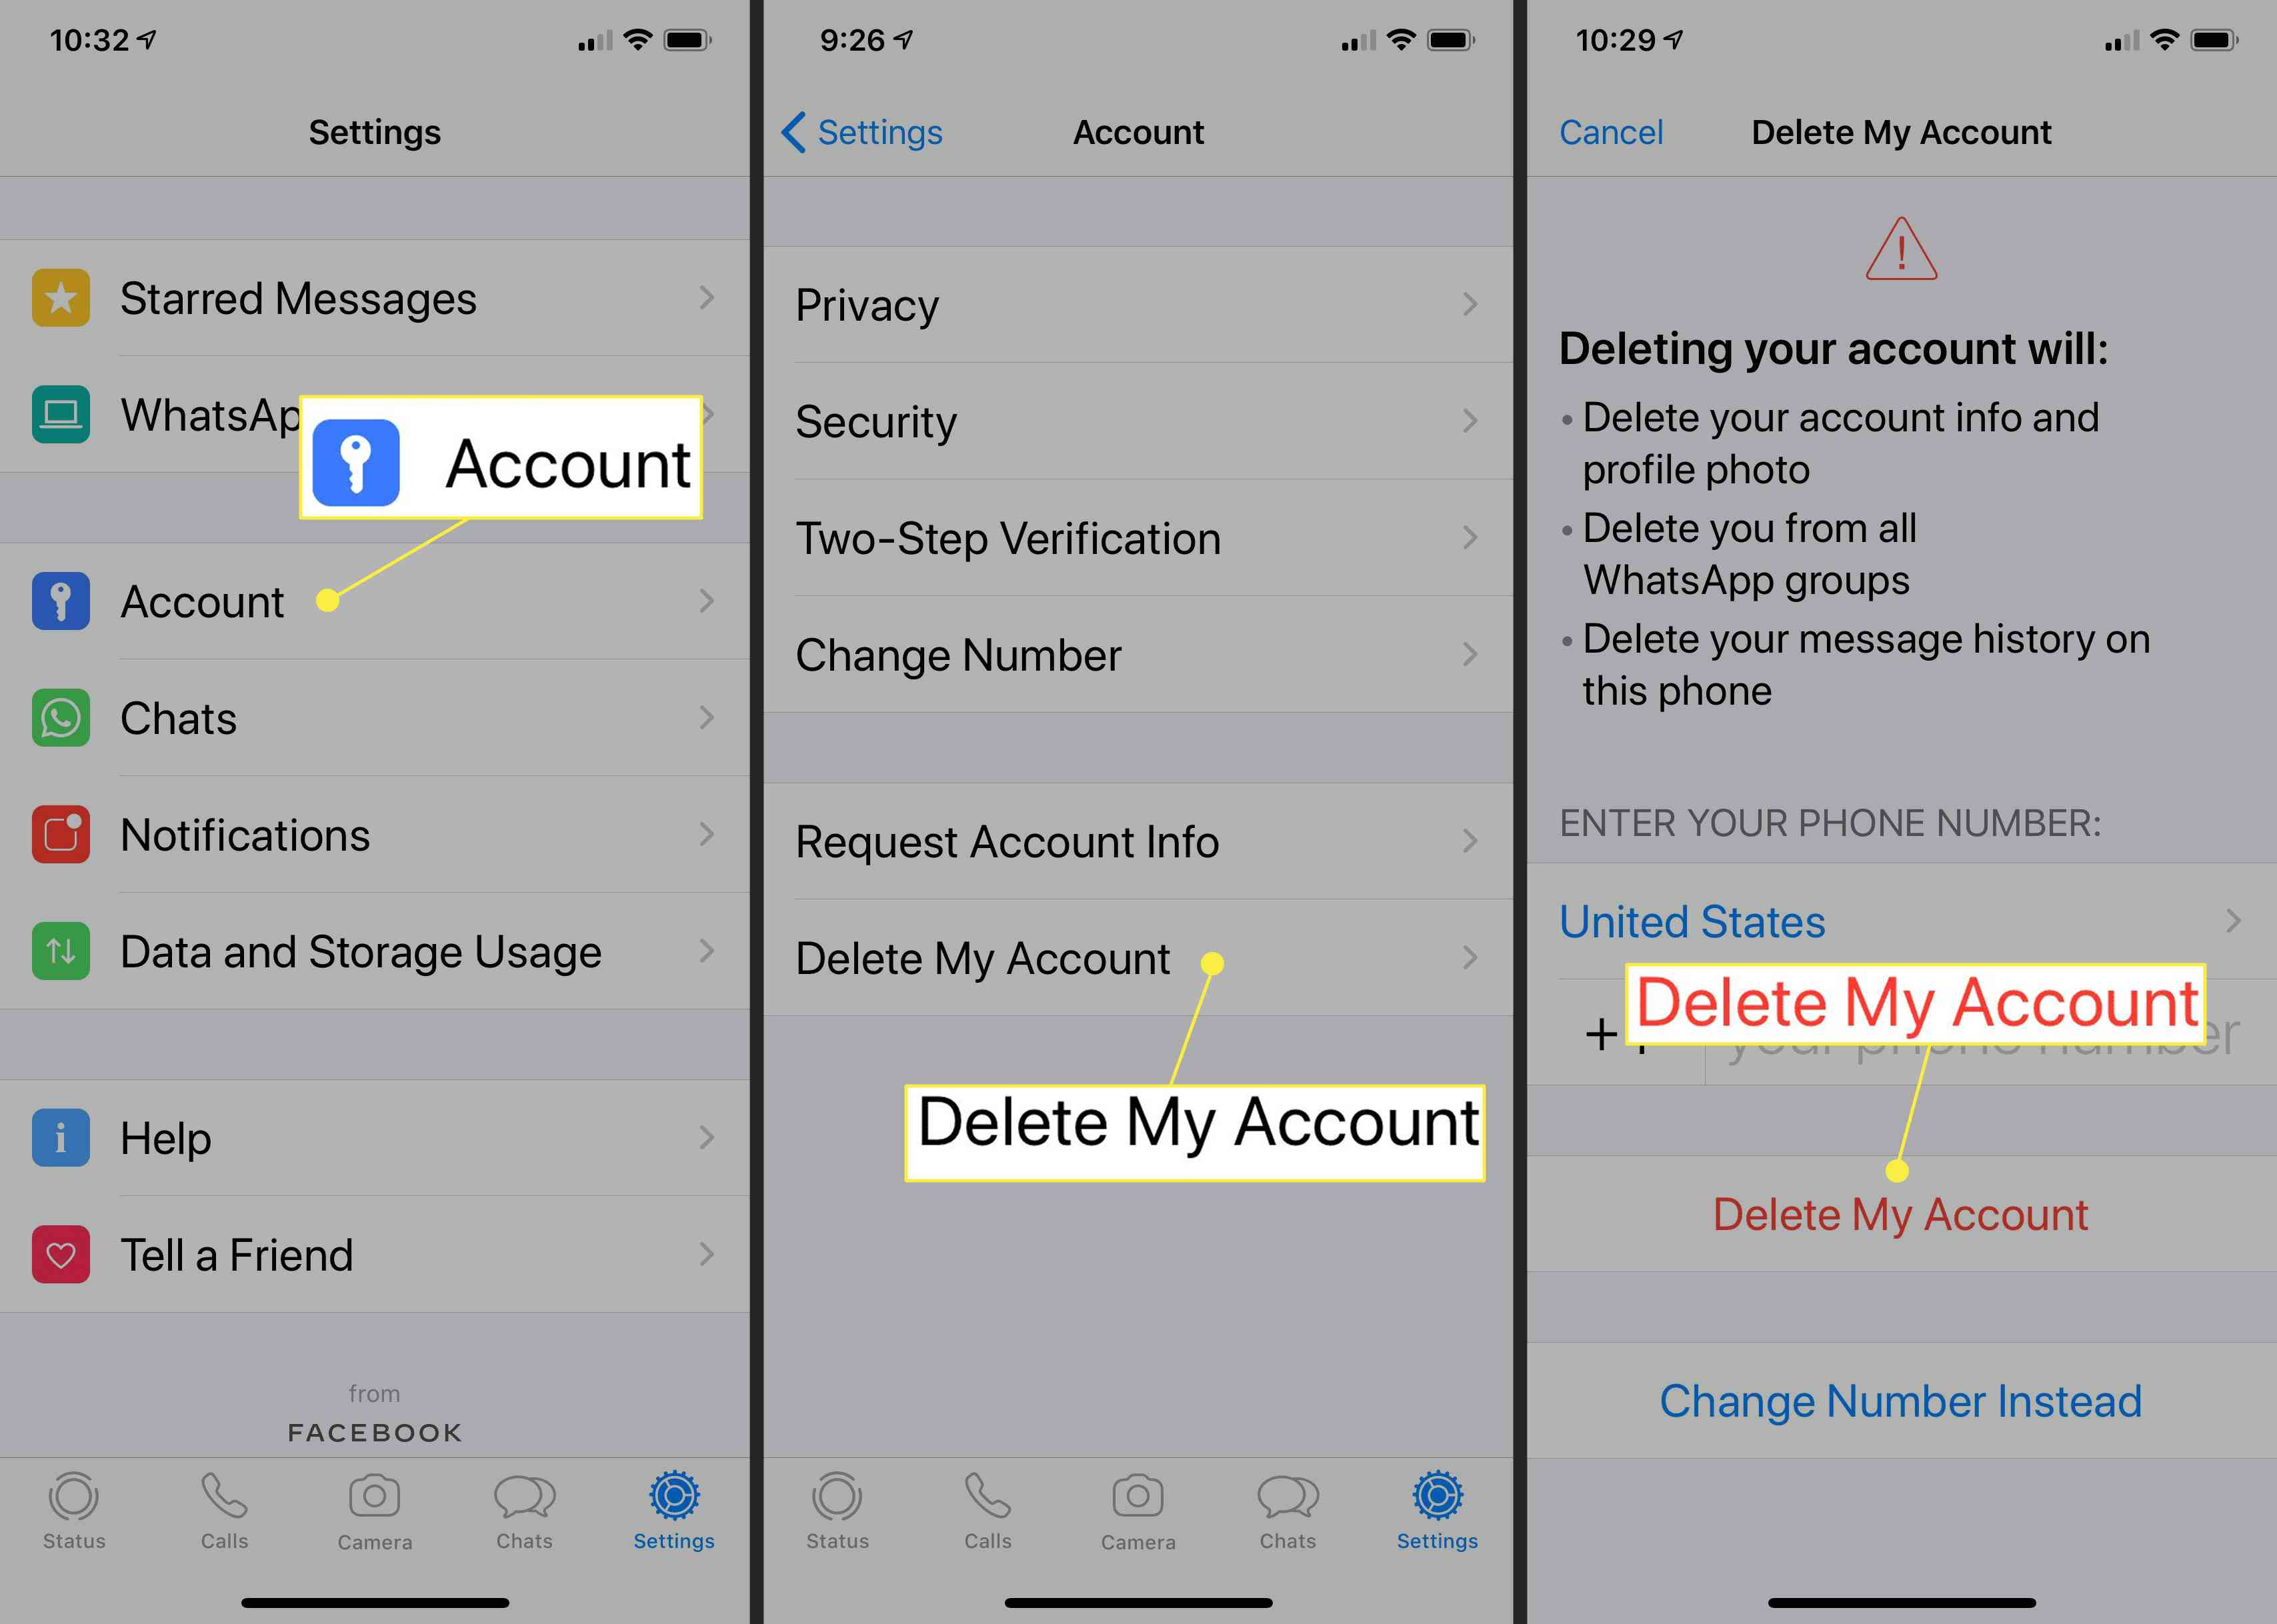 Deleting account on iPhone